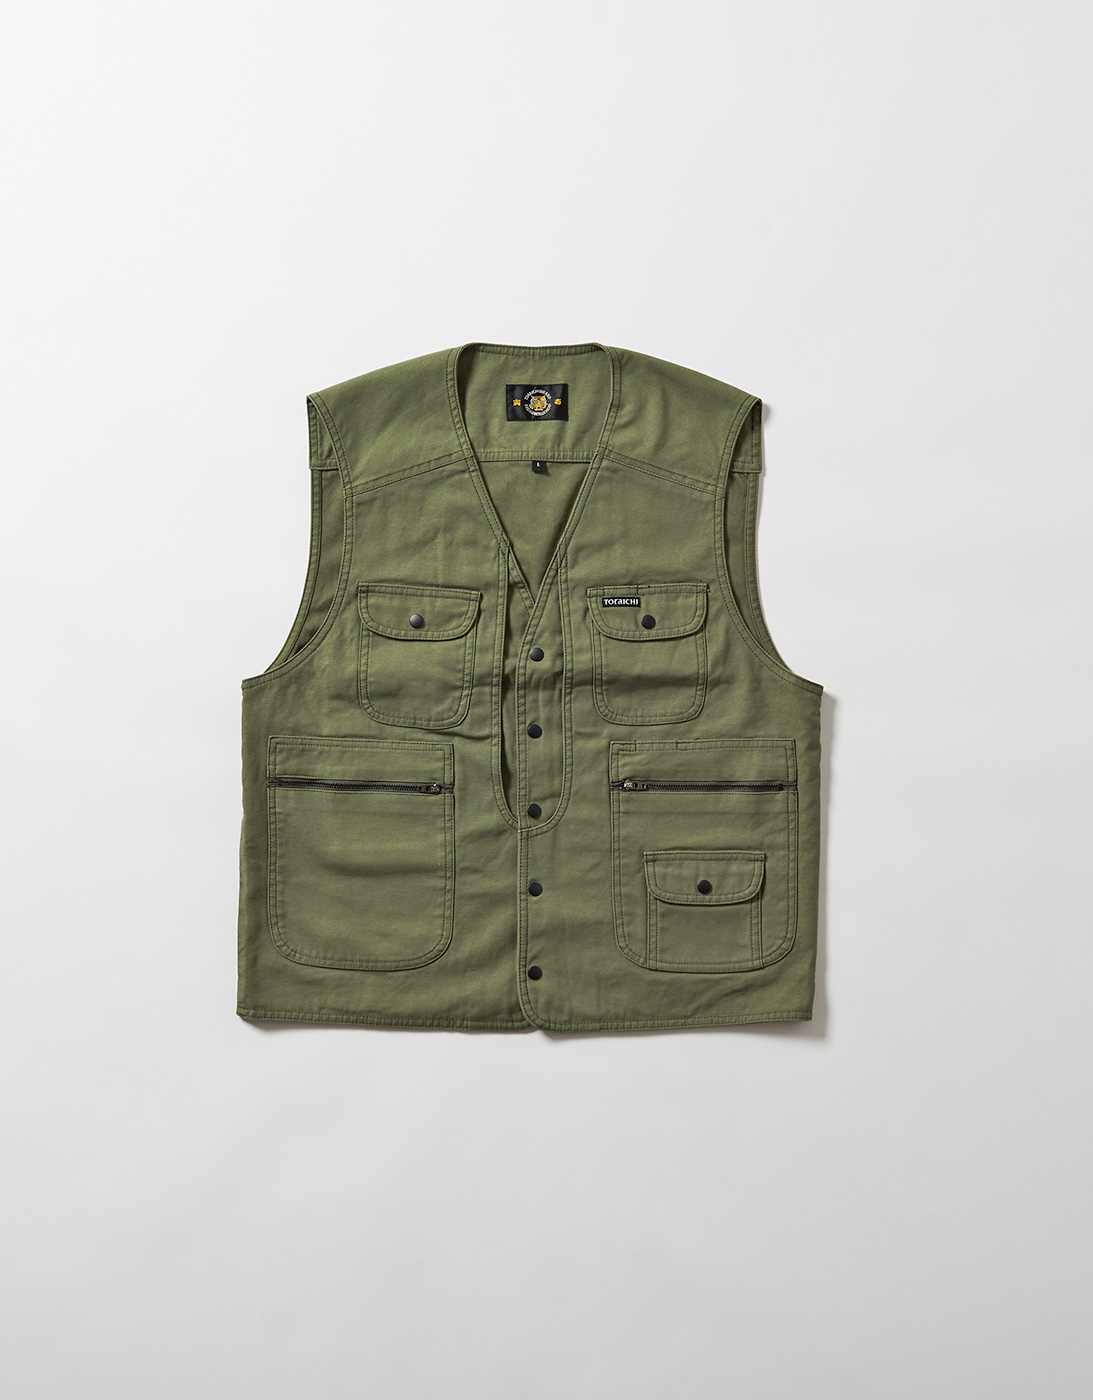 ARMY VEST ST 4441-715  OLIVE DRAB